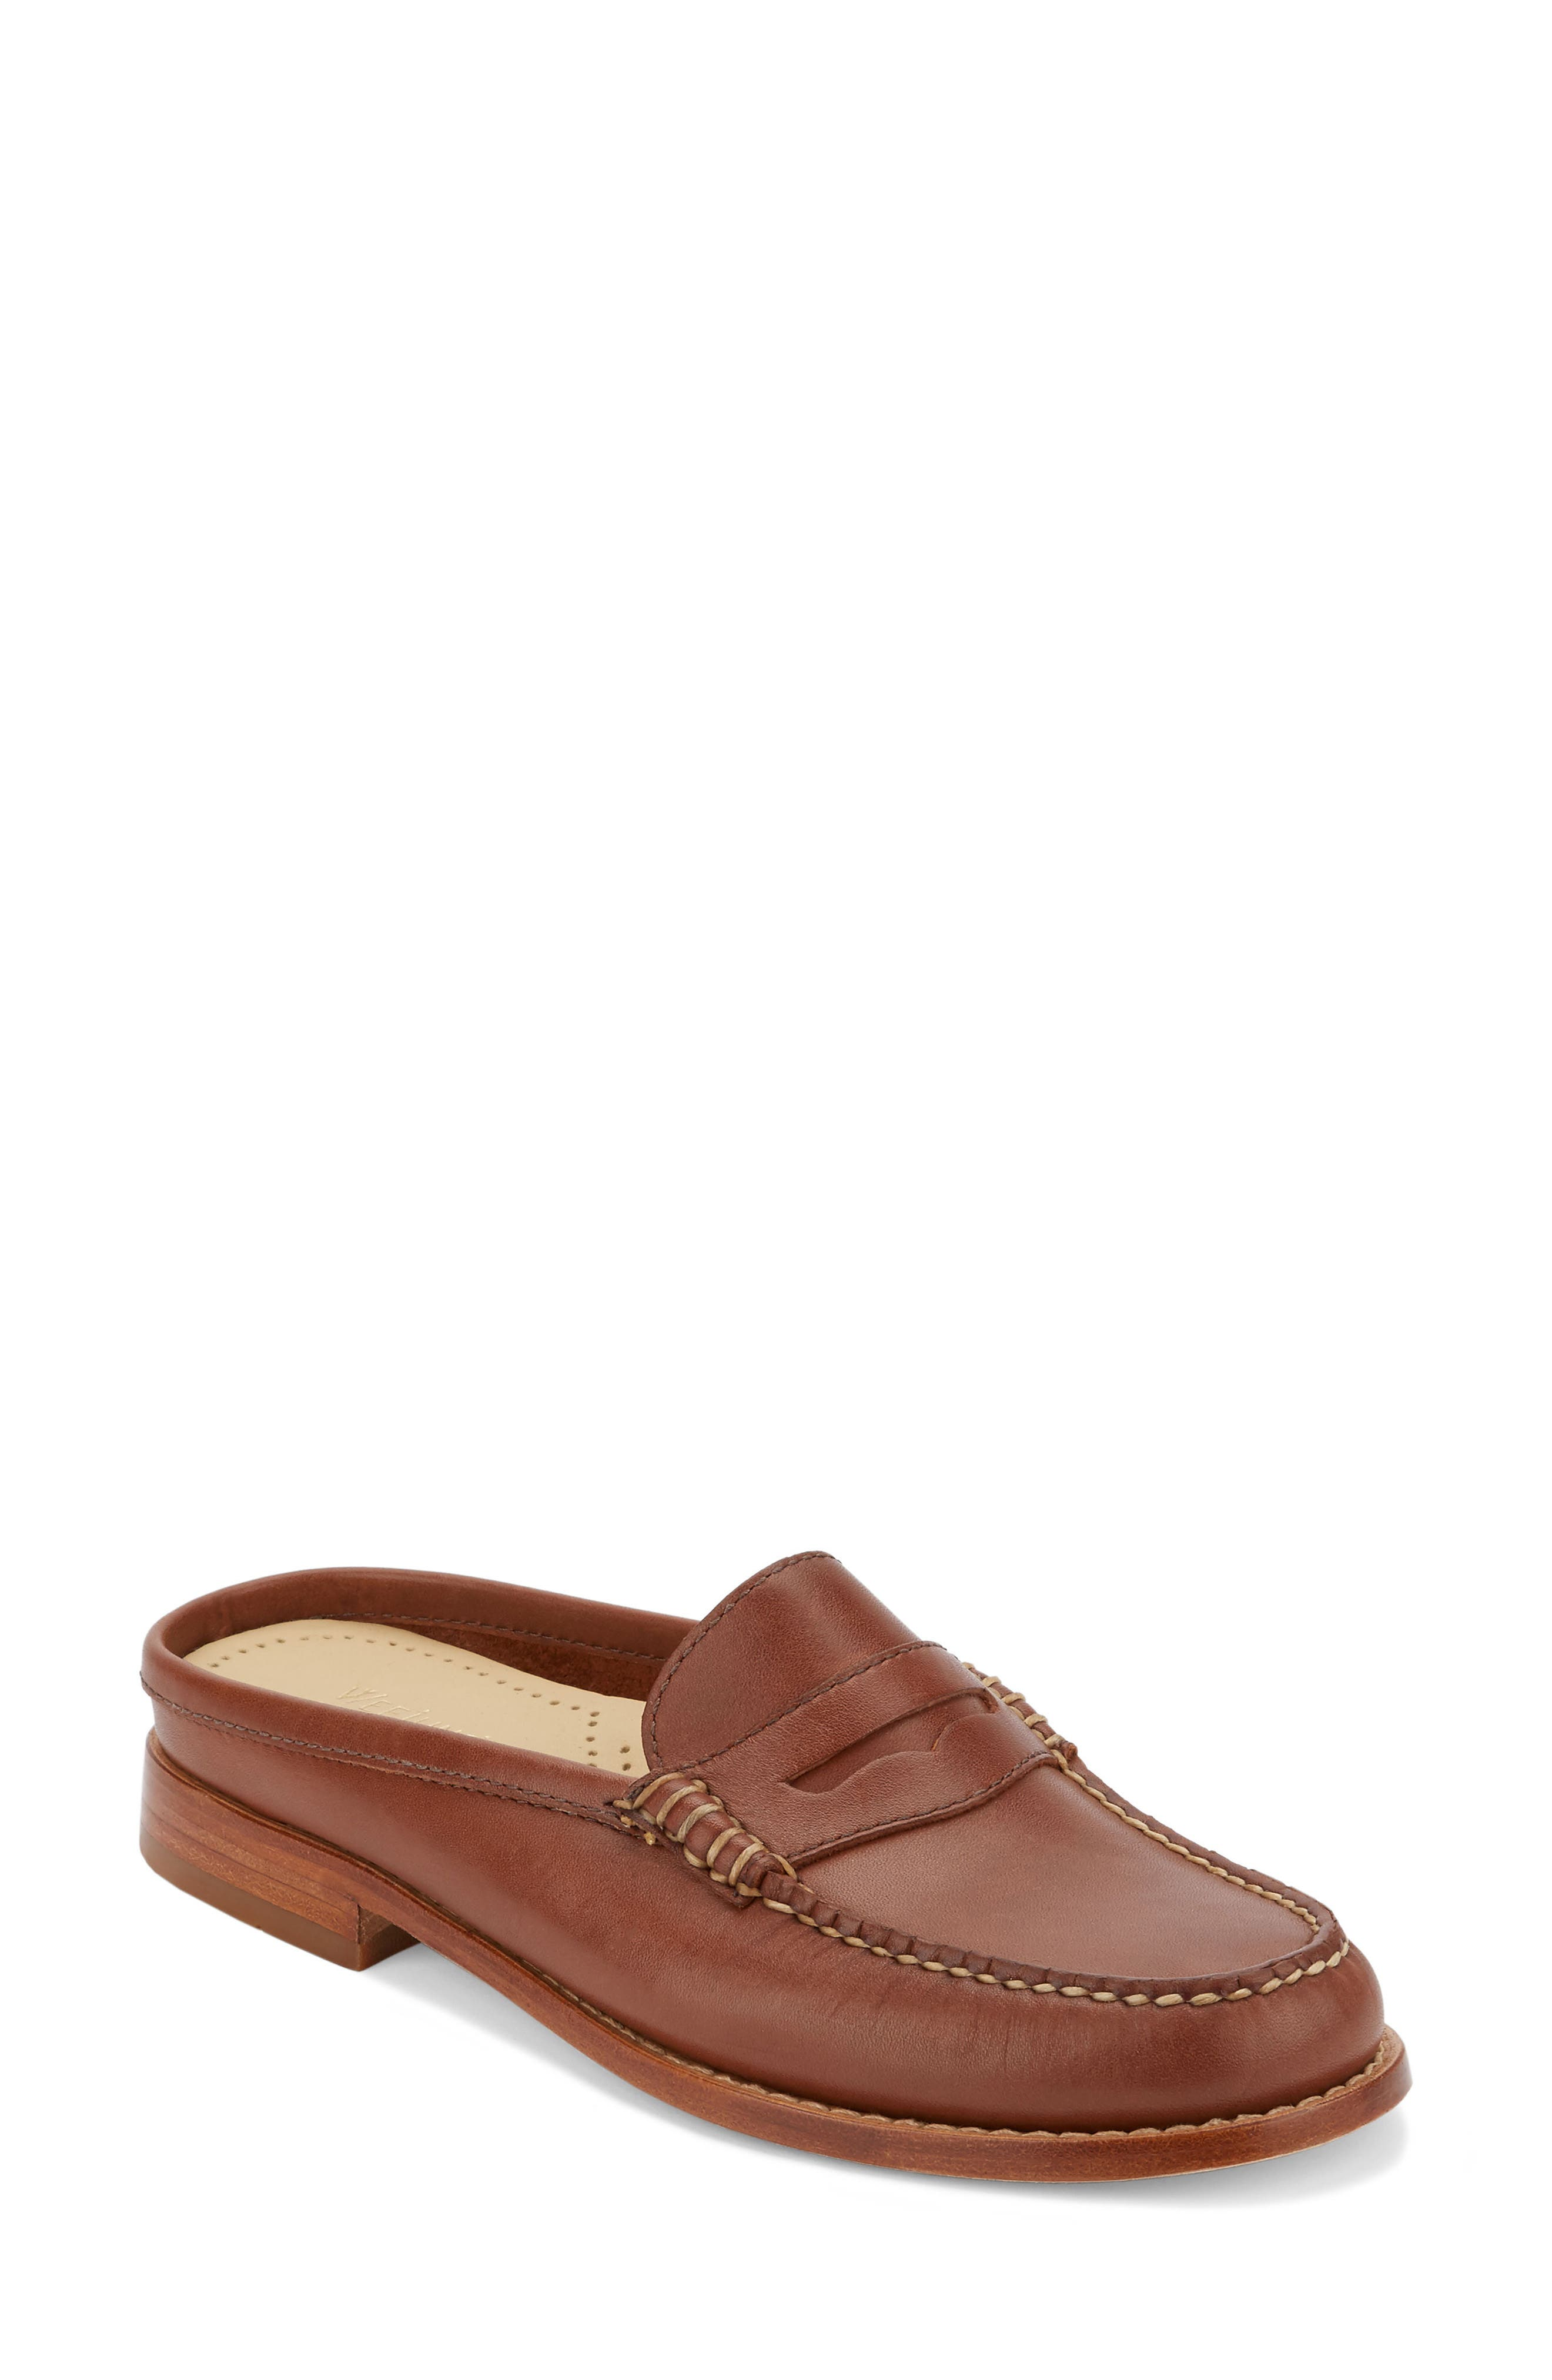 Wynn Loafer Mule,                             Main thumbnail 4, color,